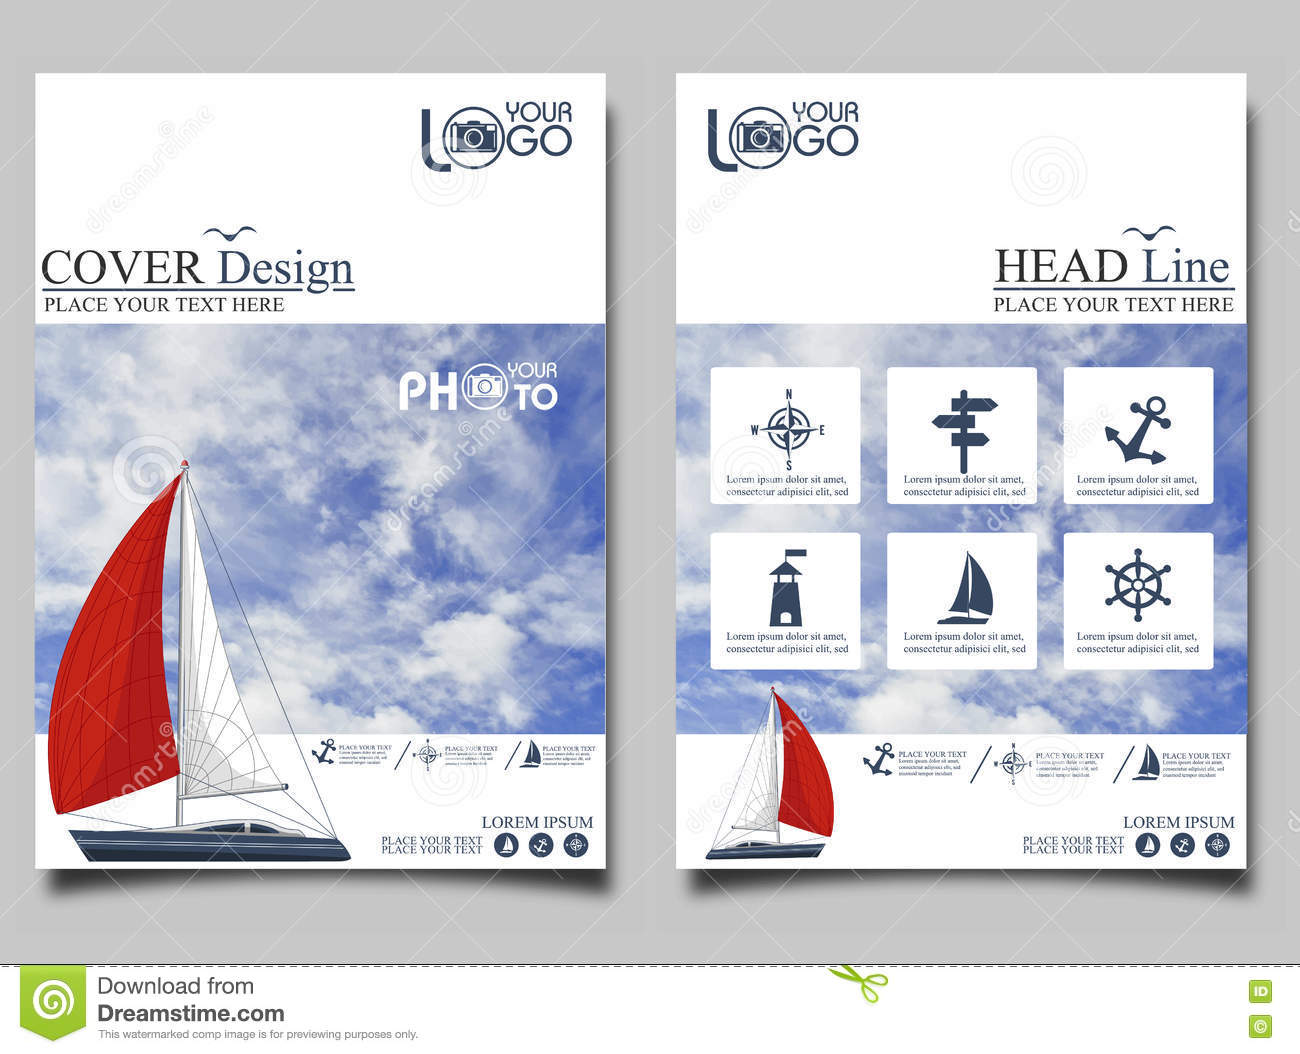 Yacht club flyer design template stock illustration yacht club flyer design template toneelgroepblik Image collections